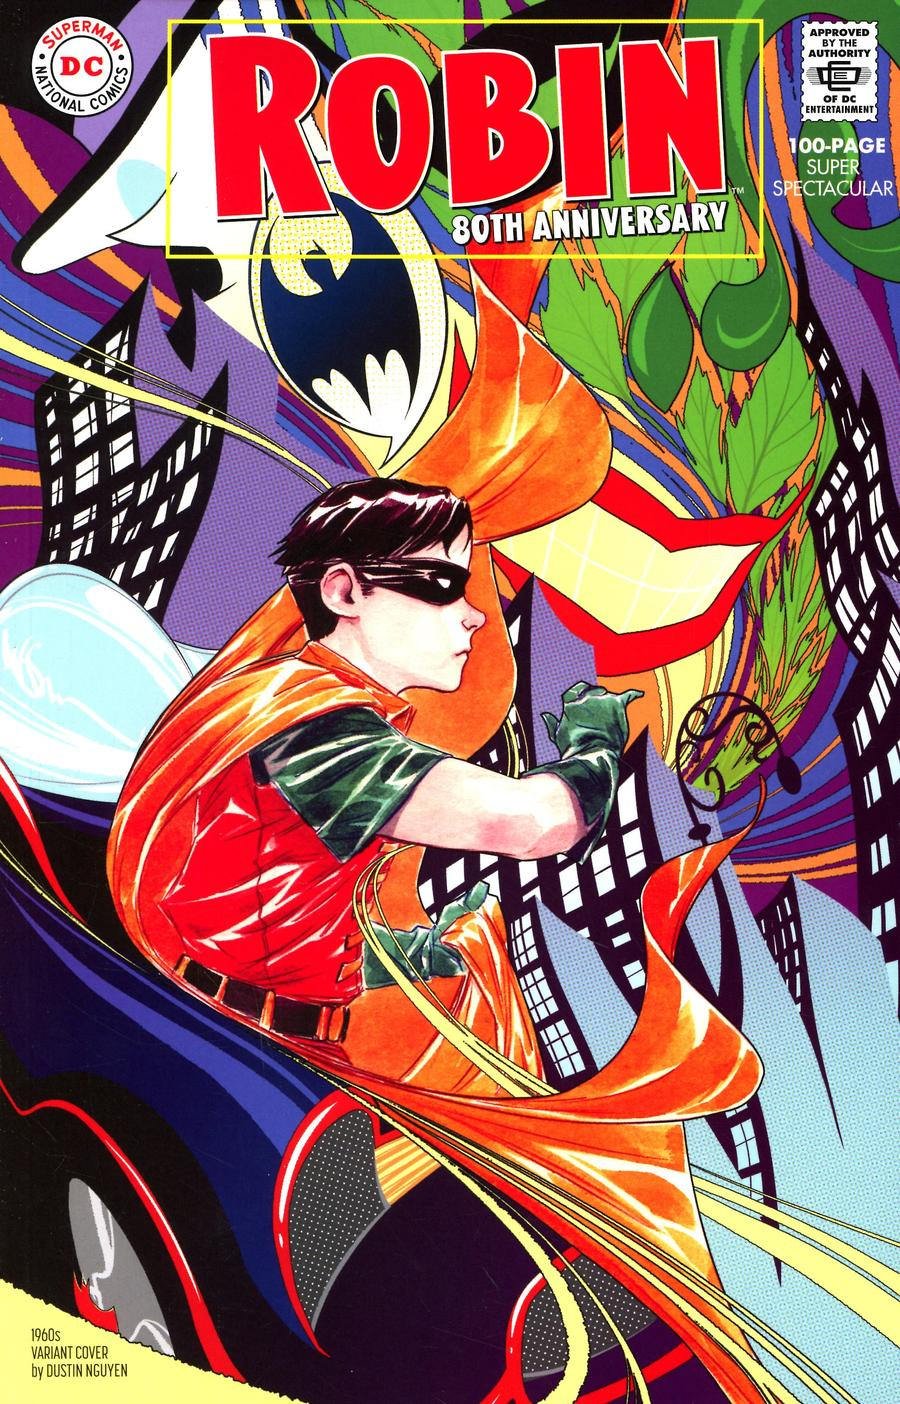 Robin 80th Anniversary 100-Page Super Spectacular #1 Cover D Variant Dustin Nguyen 1960s Cover